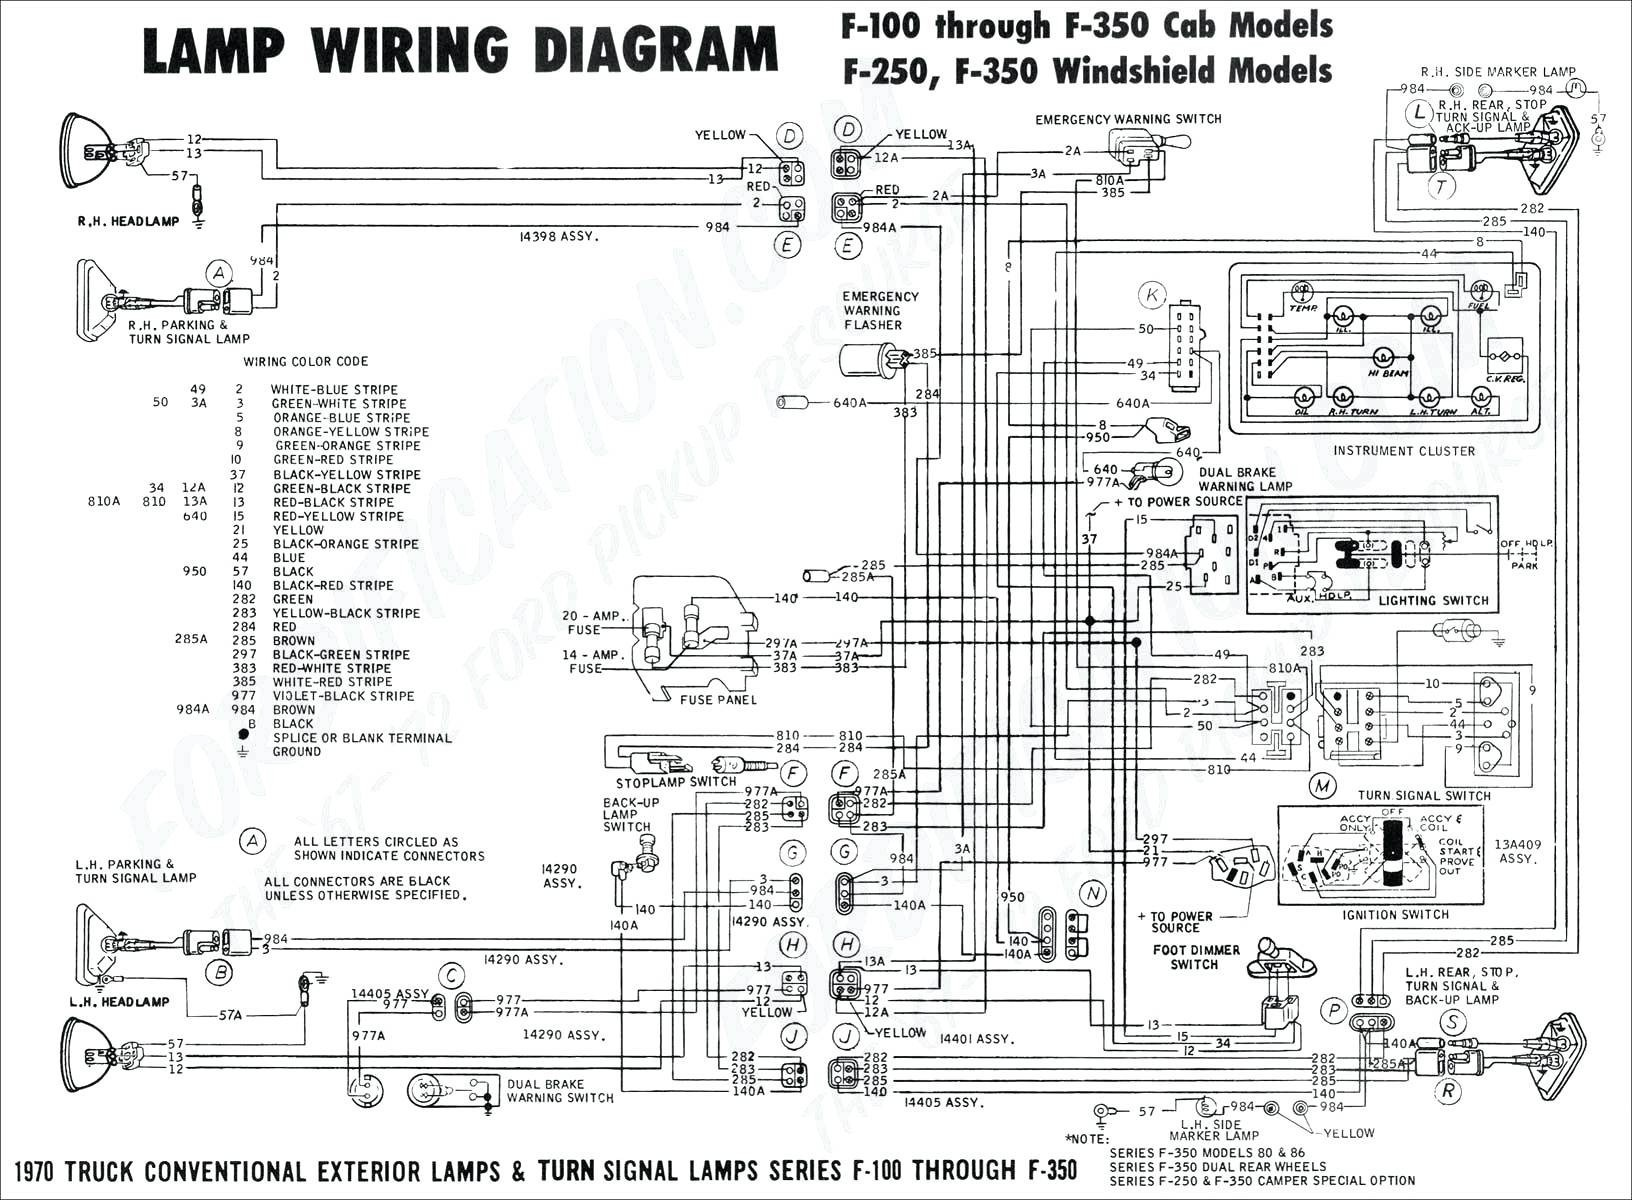 2000 Ford Taurus Fuel Pump Wiring Diagram Rate 98 Ford F250 Wiring Diagram Wire Data •